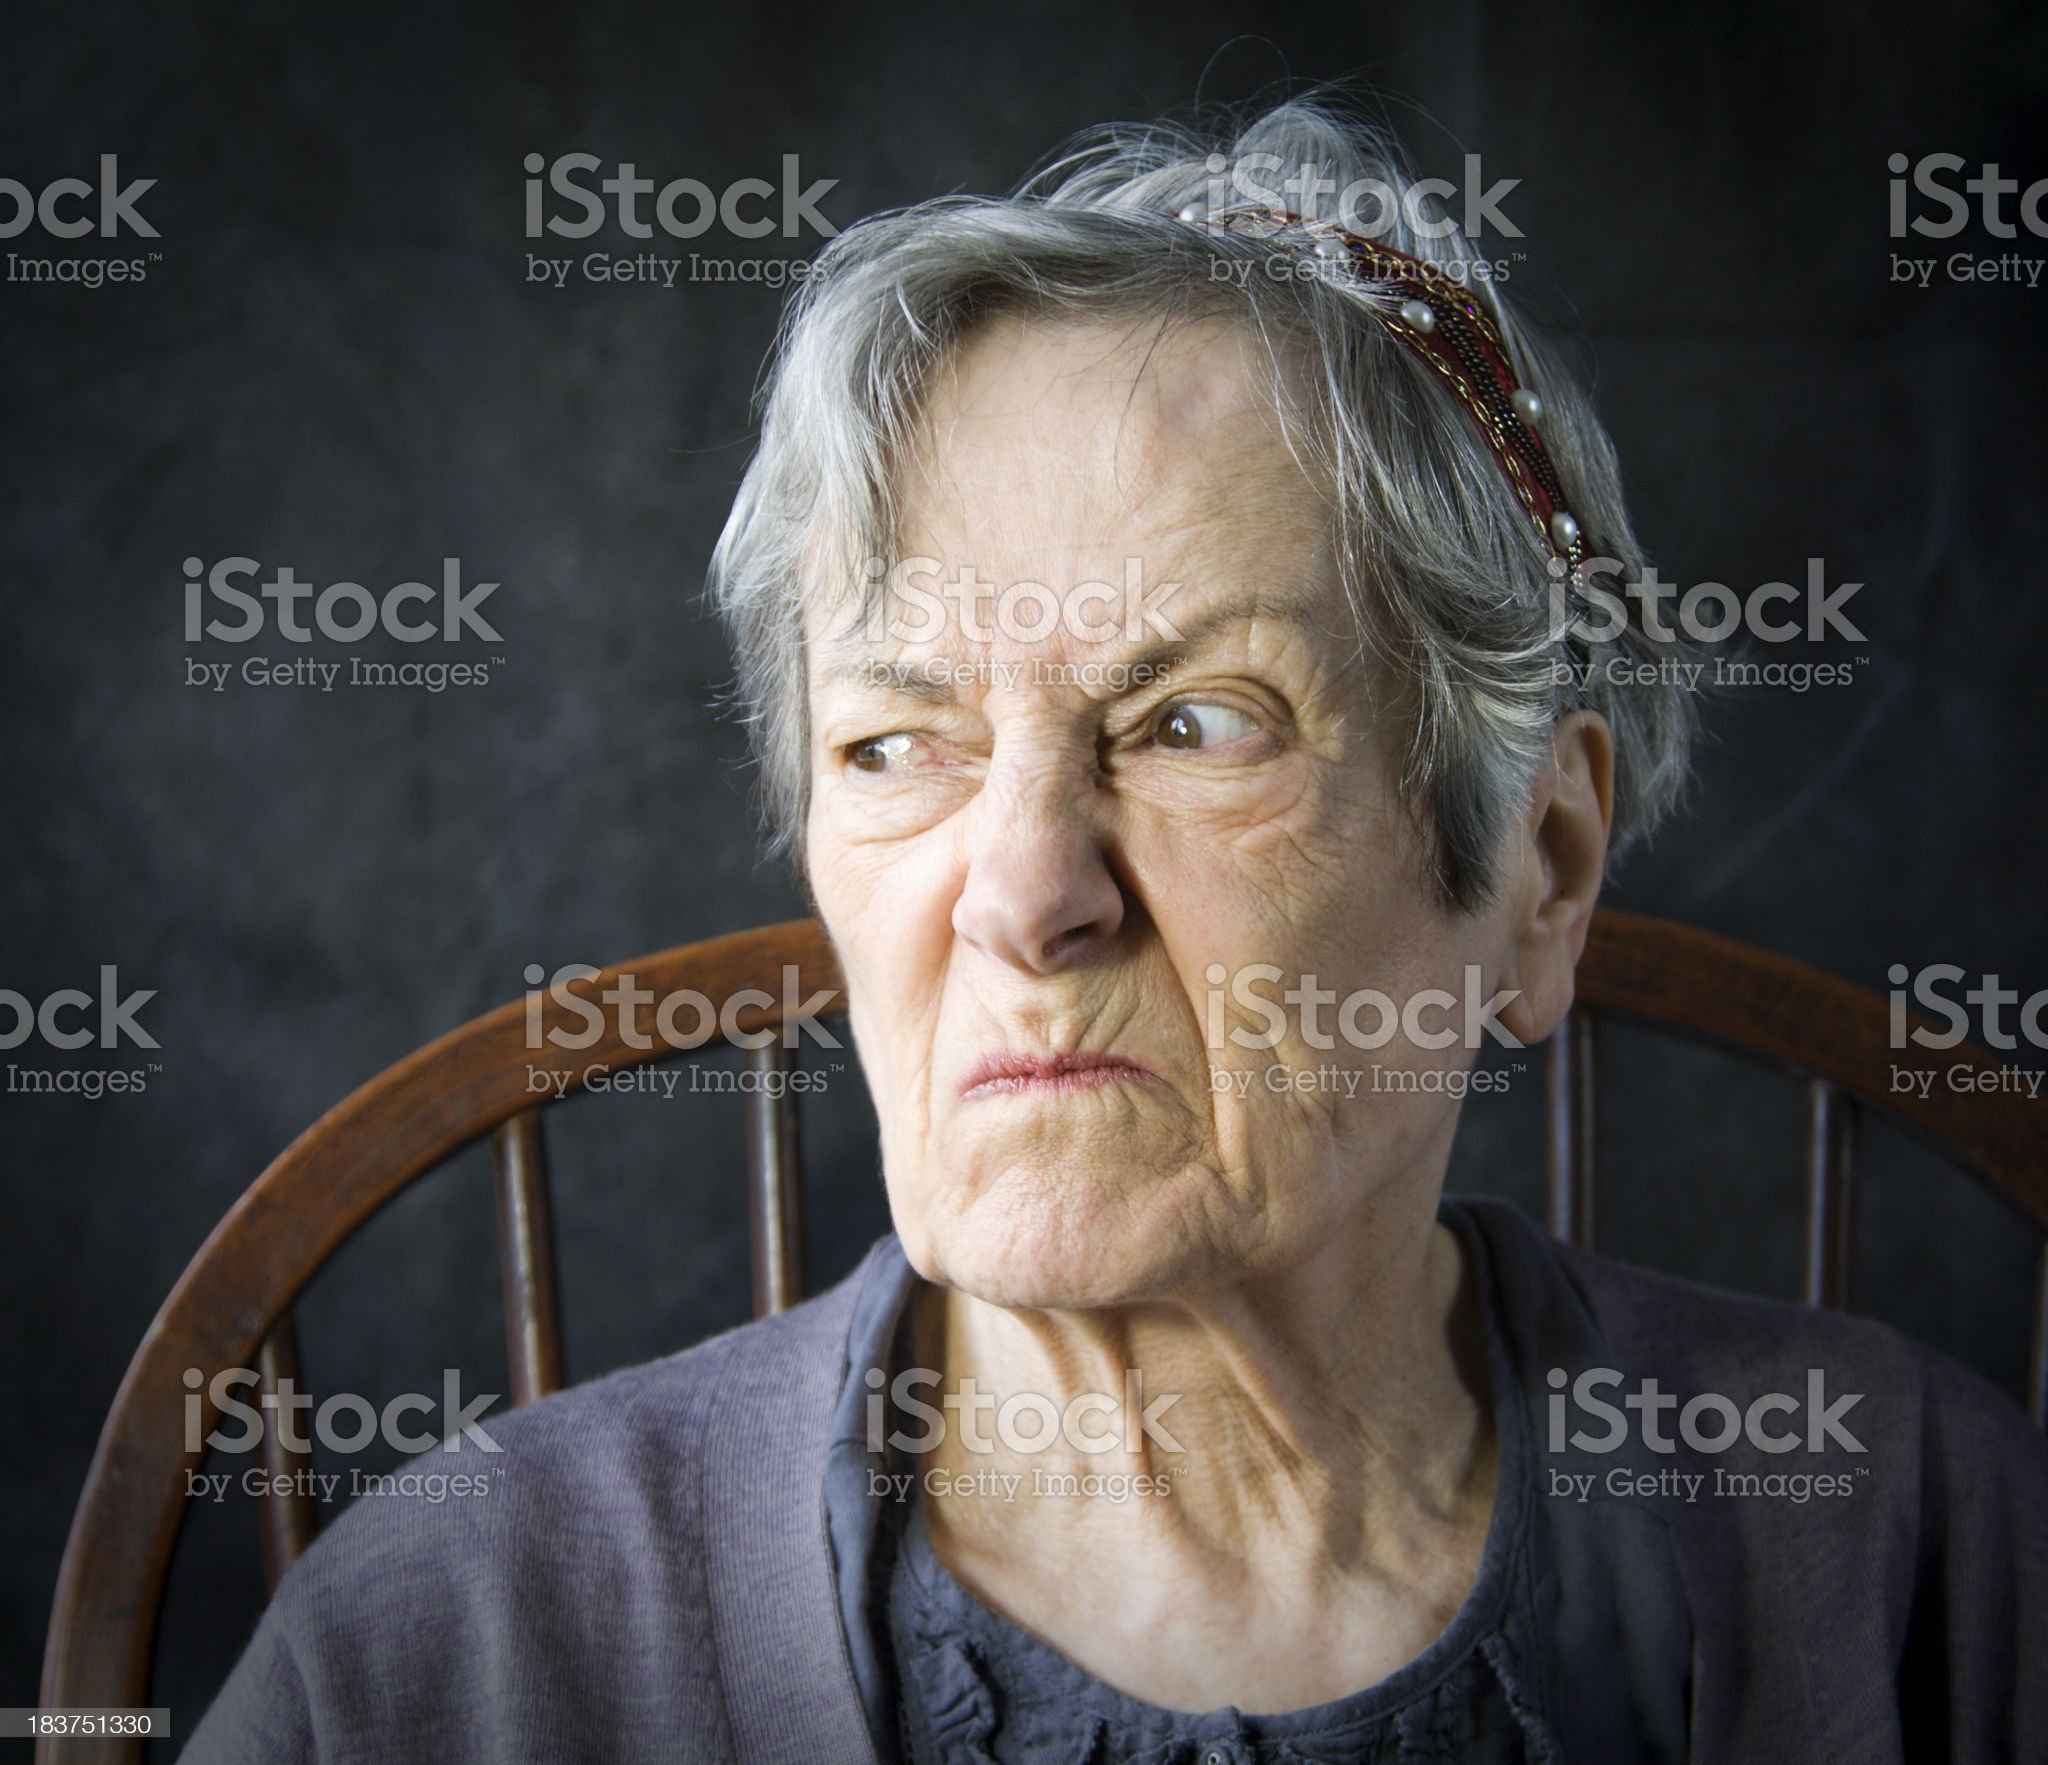 Everyday Expressions: Over My Dead Body! royalty-free stock photo